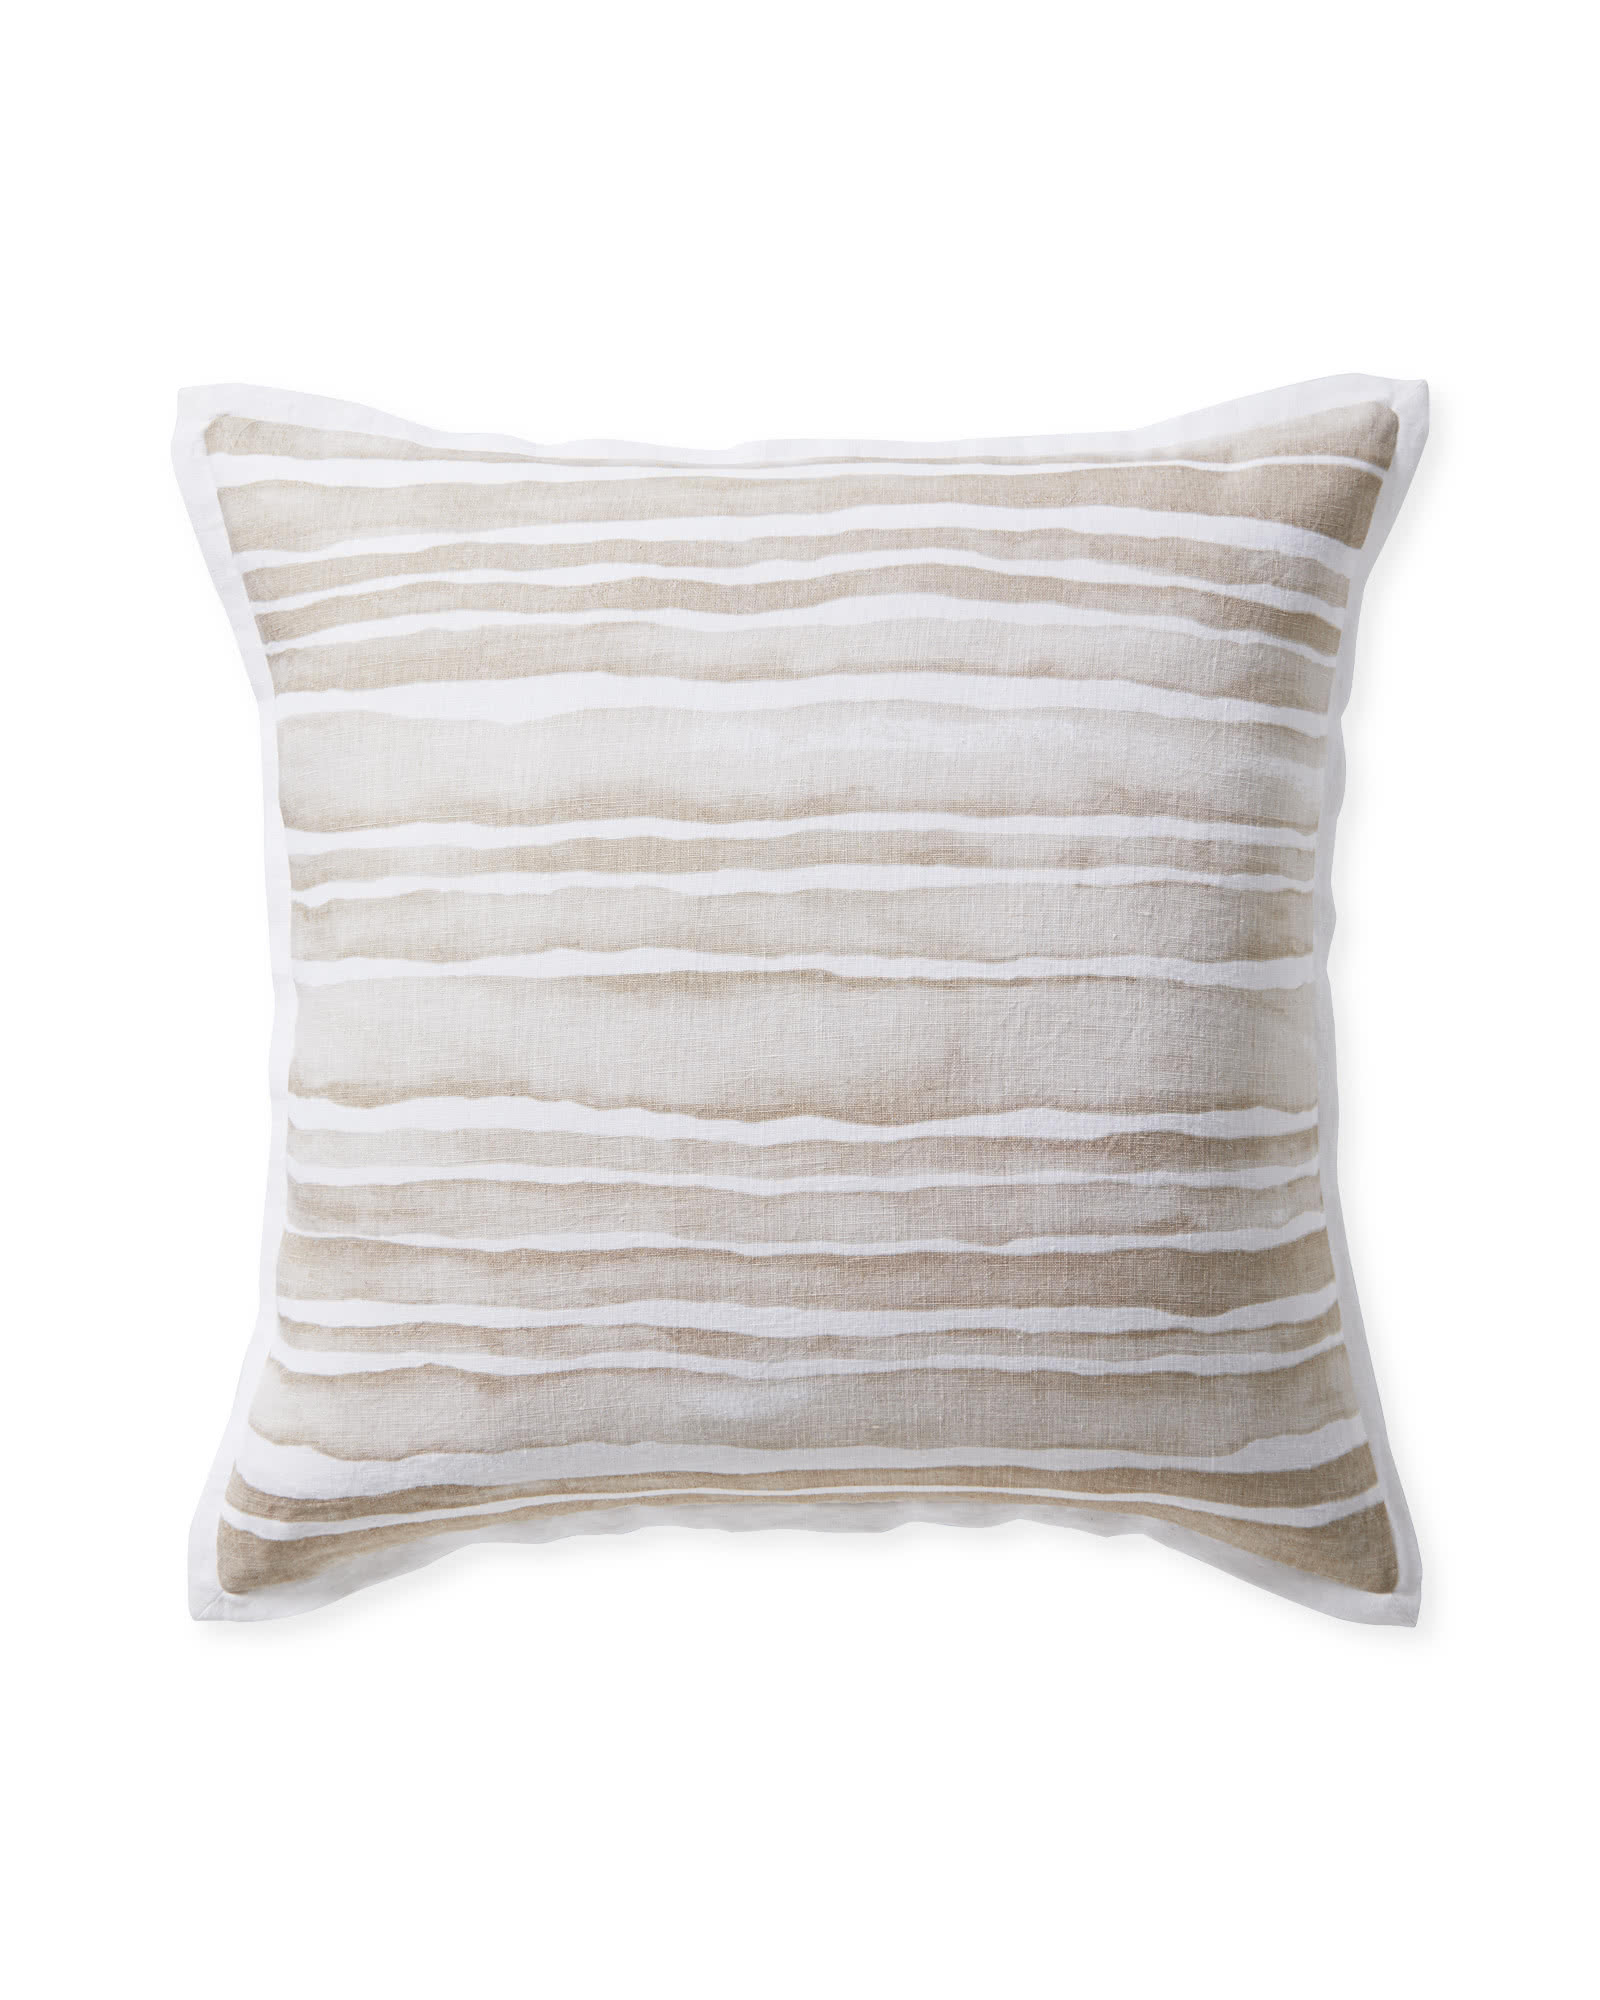 Cove Pillow Cover, Sand